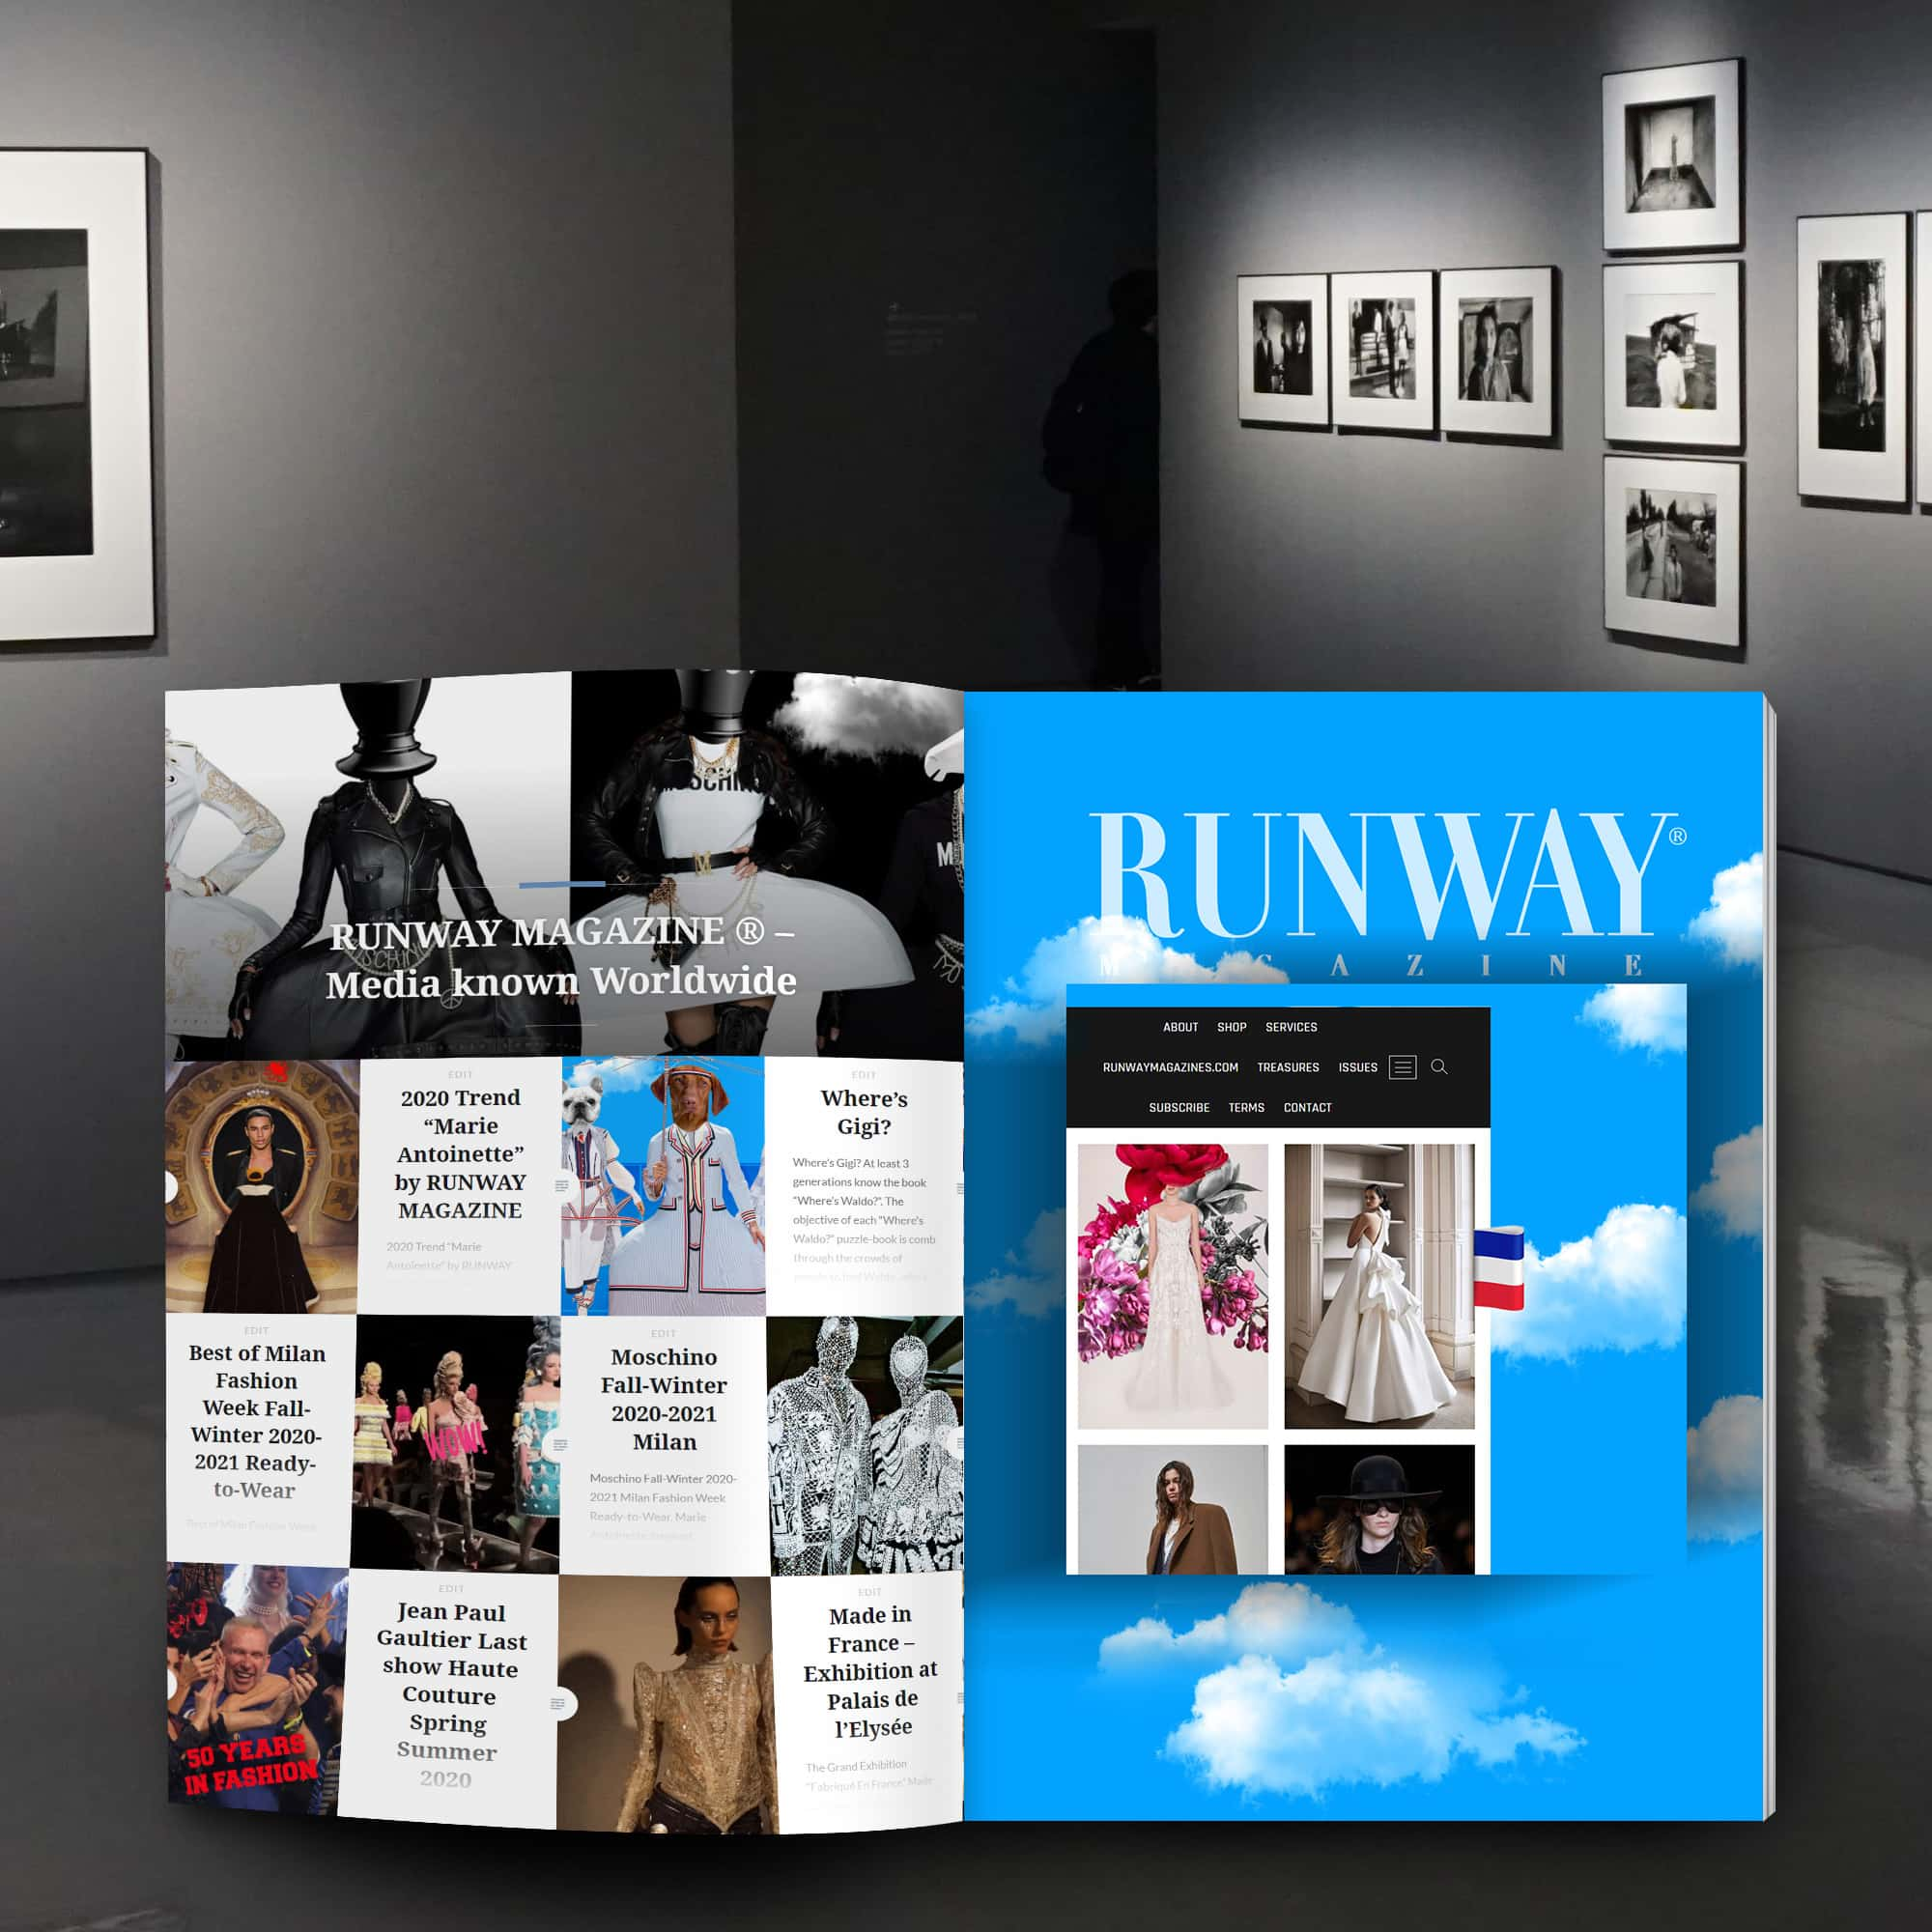 RUNWAY MAGAZINE ® - International Twofold Media connu dans le monde entier